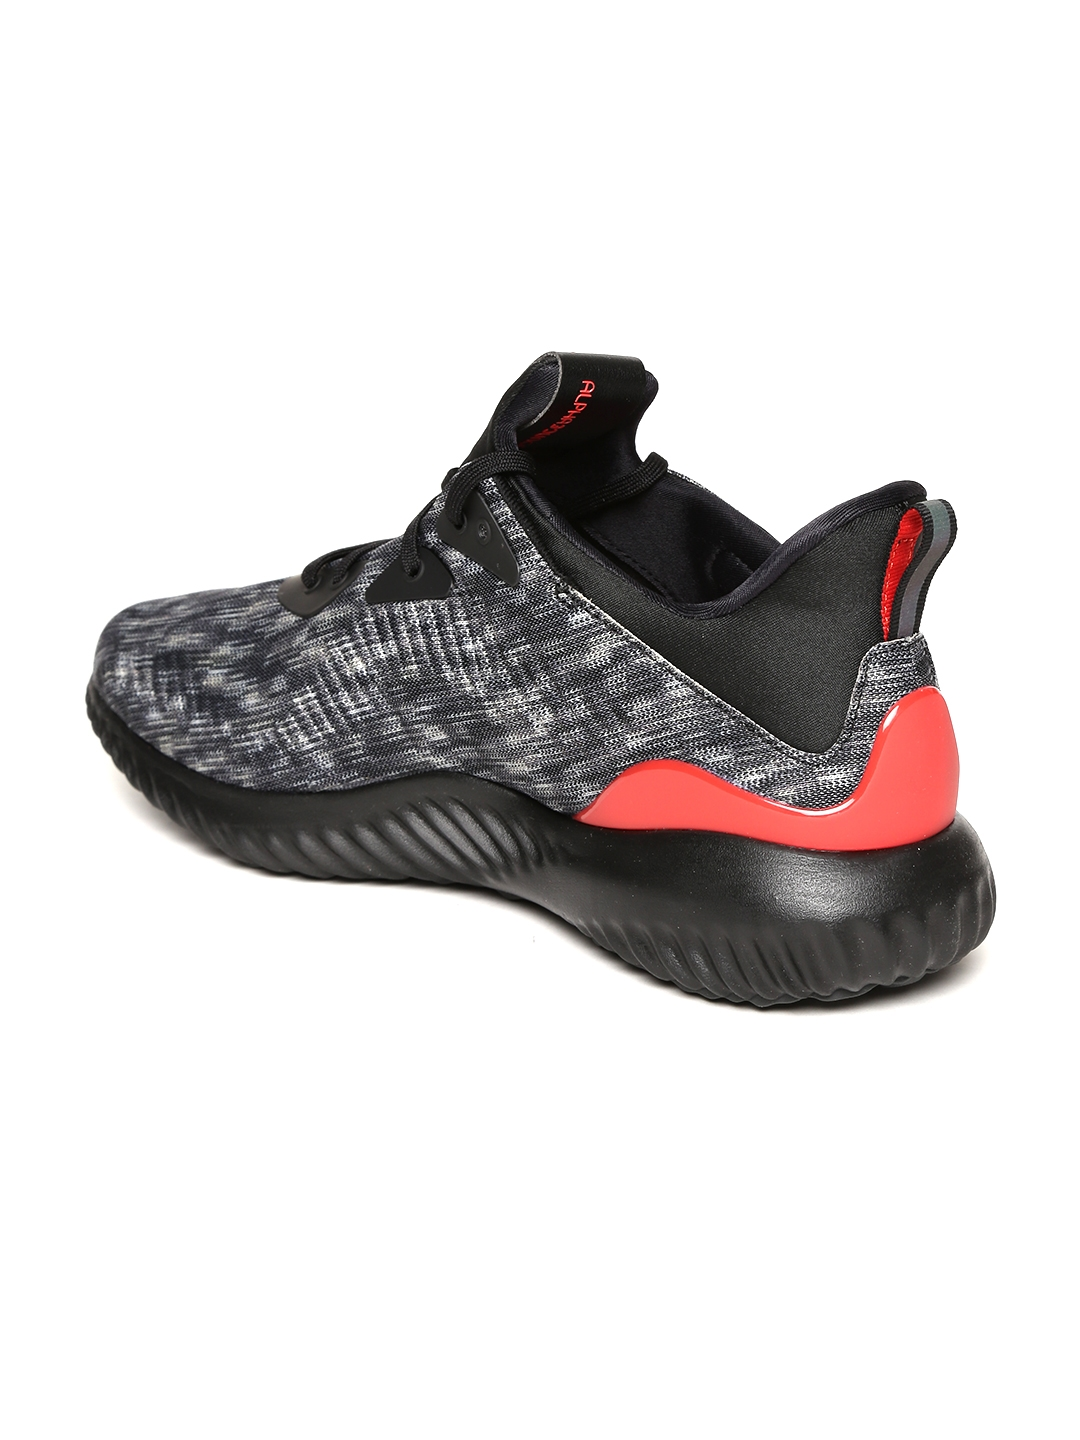 sports shoes 0b929 789ba ADIDAS Men Grey  Black Alphabounce 1 CNY U Patterned Running Shoes